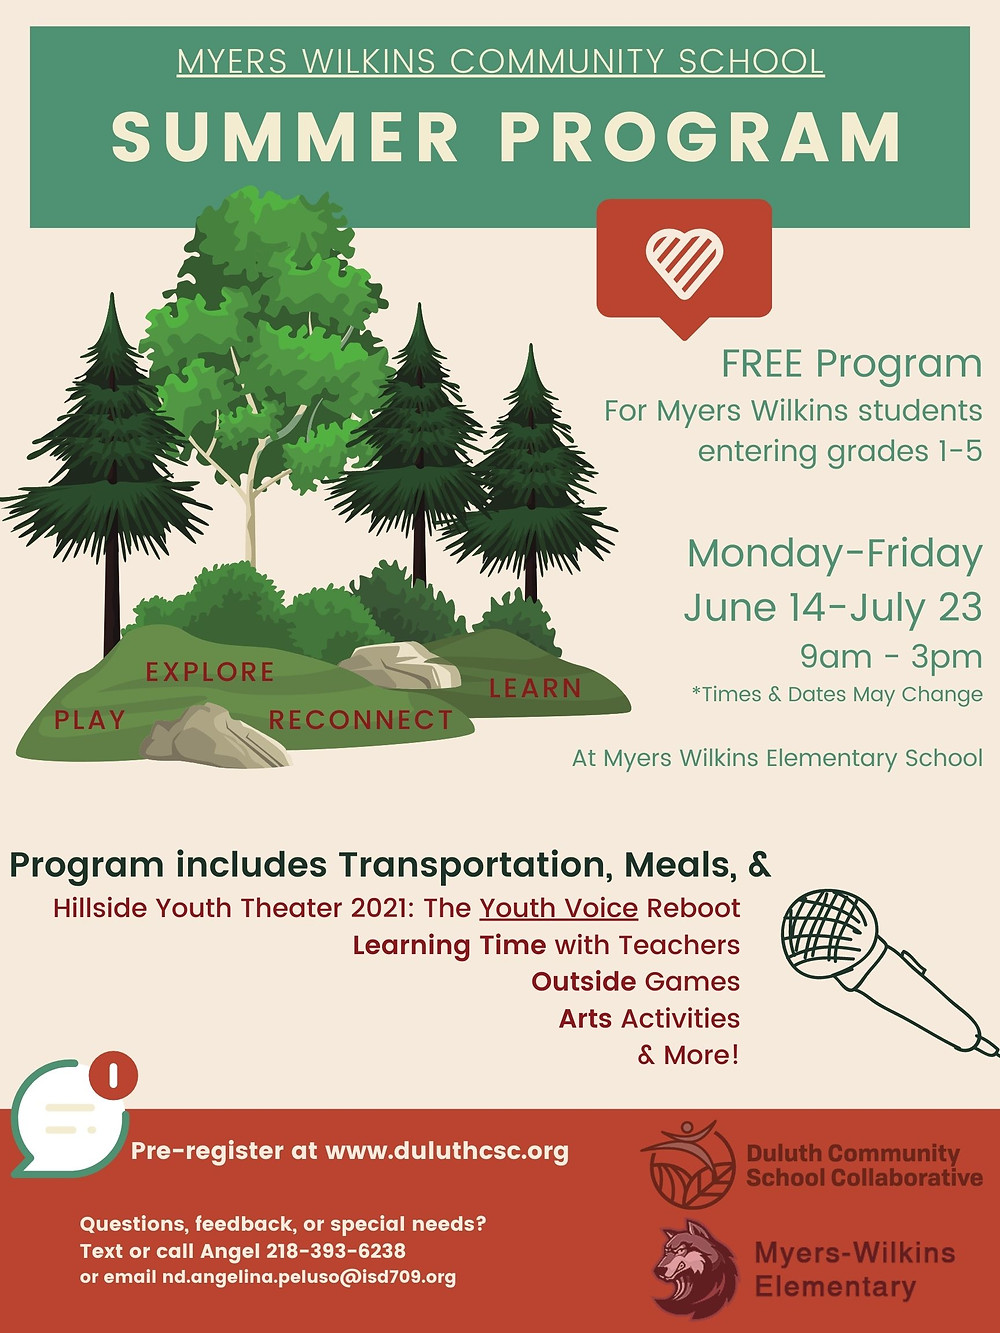 A flyer with an illustration of 4 trees labeled 'play', 'explore', 'reconnect', and 'learn' alongside the text 'MYERS WILKINS COMMUNITY SCHOOL SUMMER PROGRAM. FREE Program for Myers Wilkins students entering grades 1-5. Monday-Friday, June 14-July 23, 9am-3pm *Times & Dates May Change. At Myers Wilkins Elementary School. Program includes Transportation, Meals, & Hillside Youth Theater 2021: The Youth Voice Reboot, Learning Time with Teachers, Outside Games, Arts Activities, & More! Pre-register at www.duluthcsc.org. Questions, feedback, or special needs? Text or Call Angel 218-393-6238 or email nd.angelina.peluso@isd709.org.'